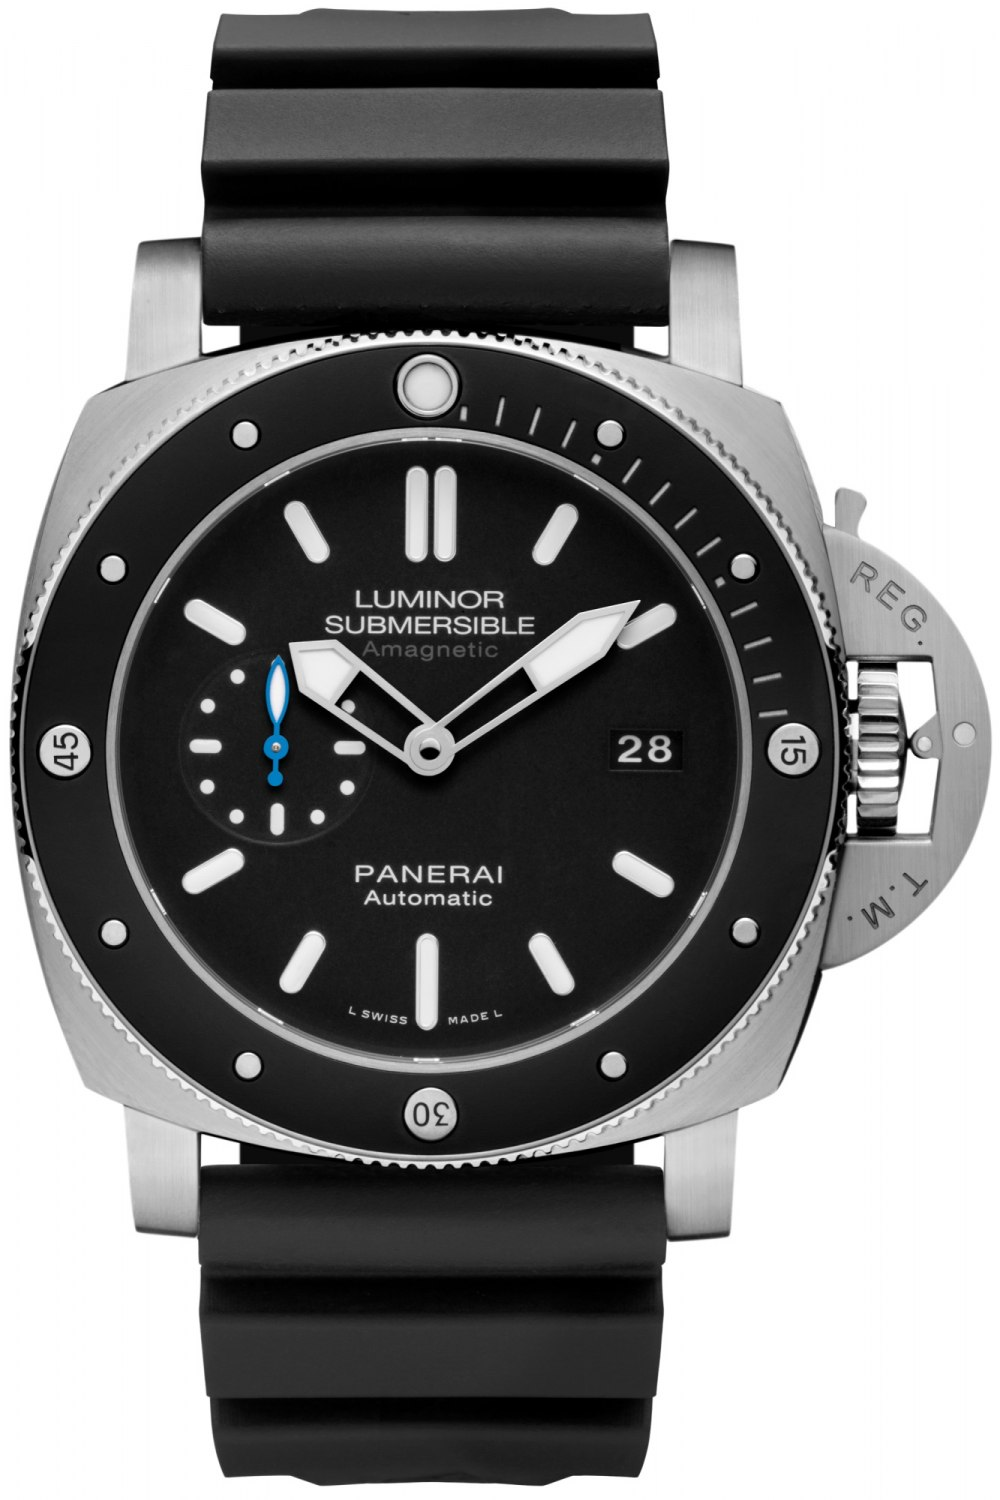 PANERAI Luminor Submersible 1950 Amagnetic 3 Days 01389